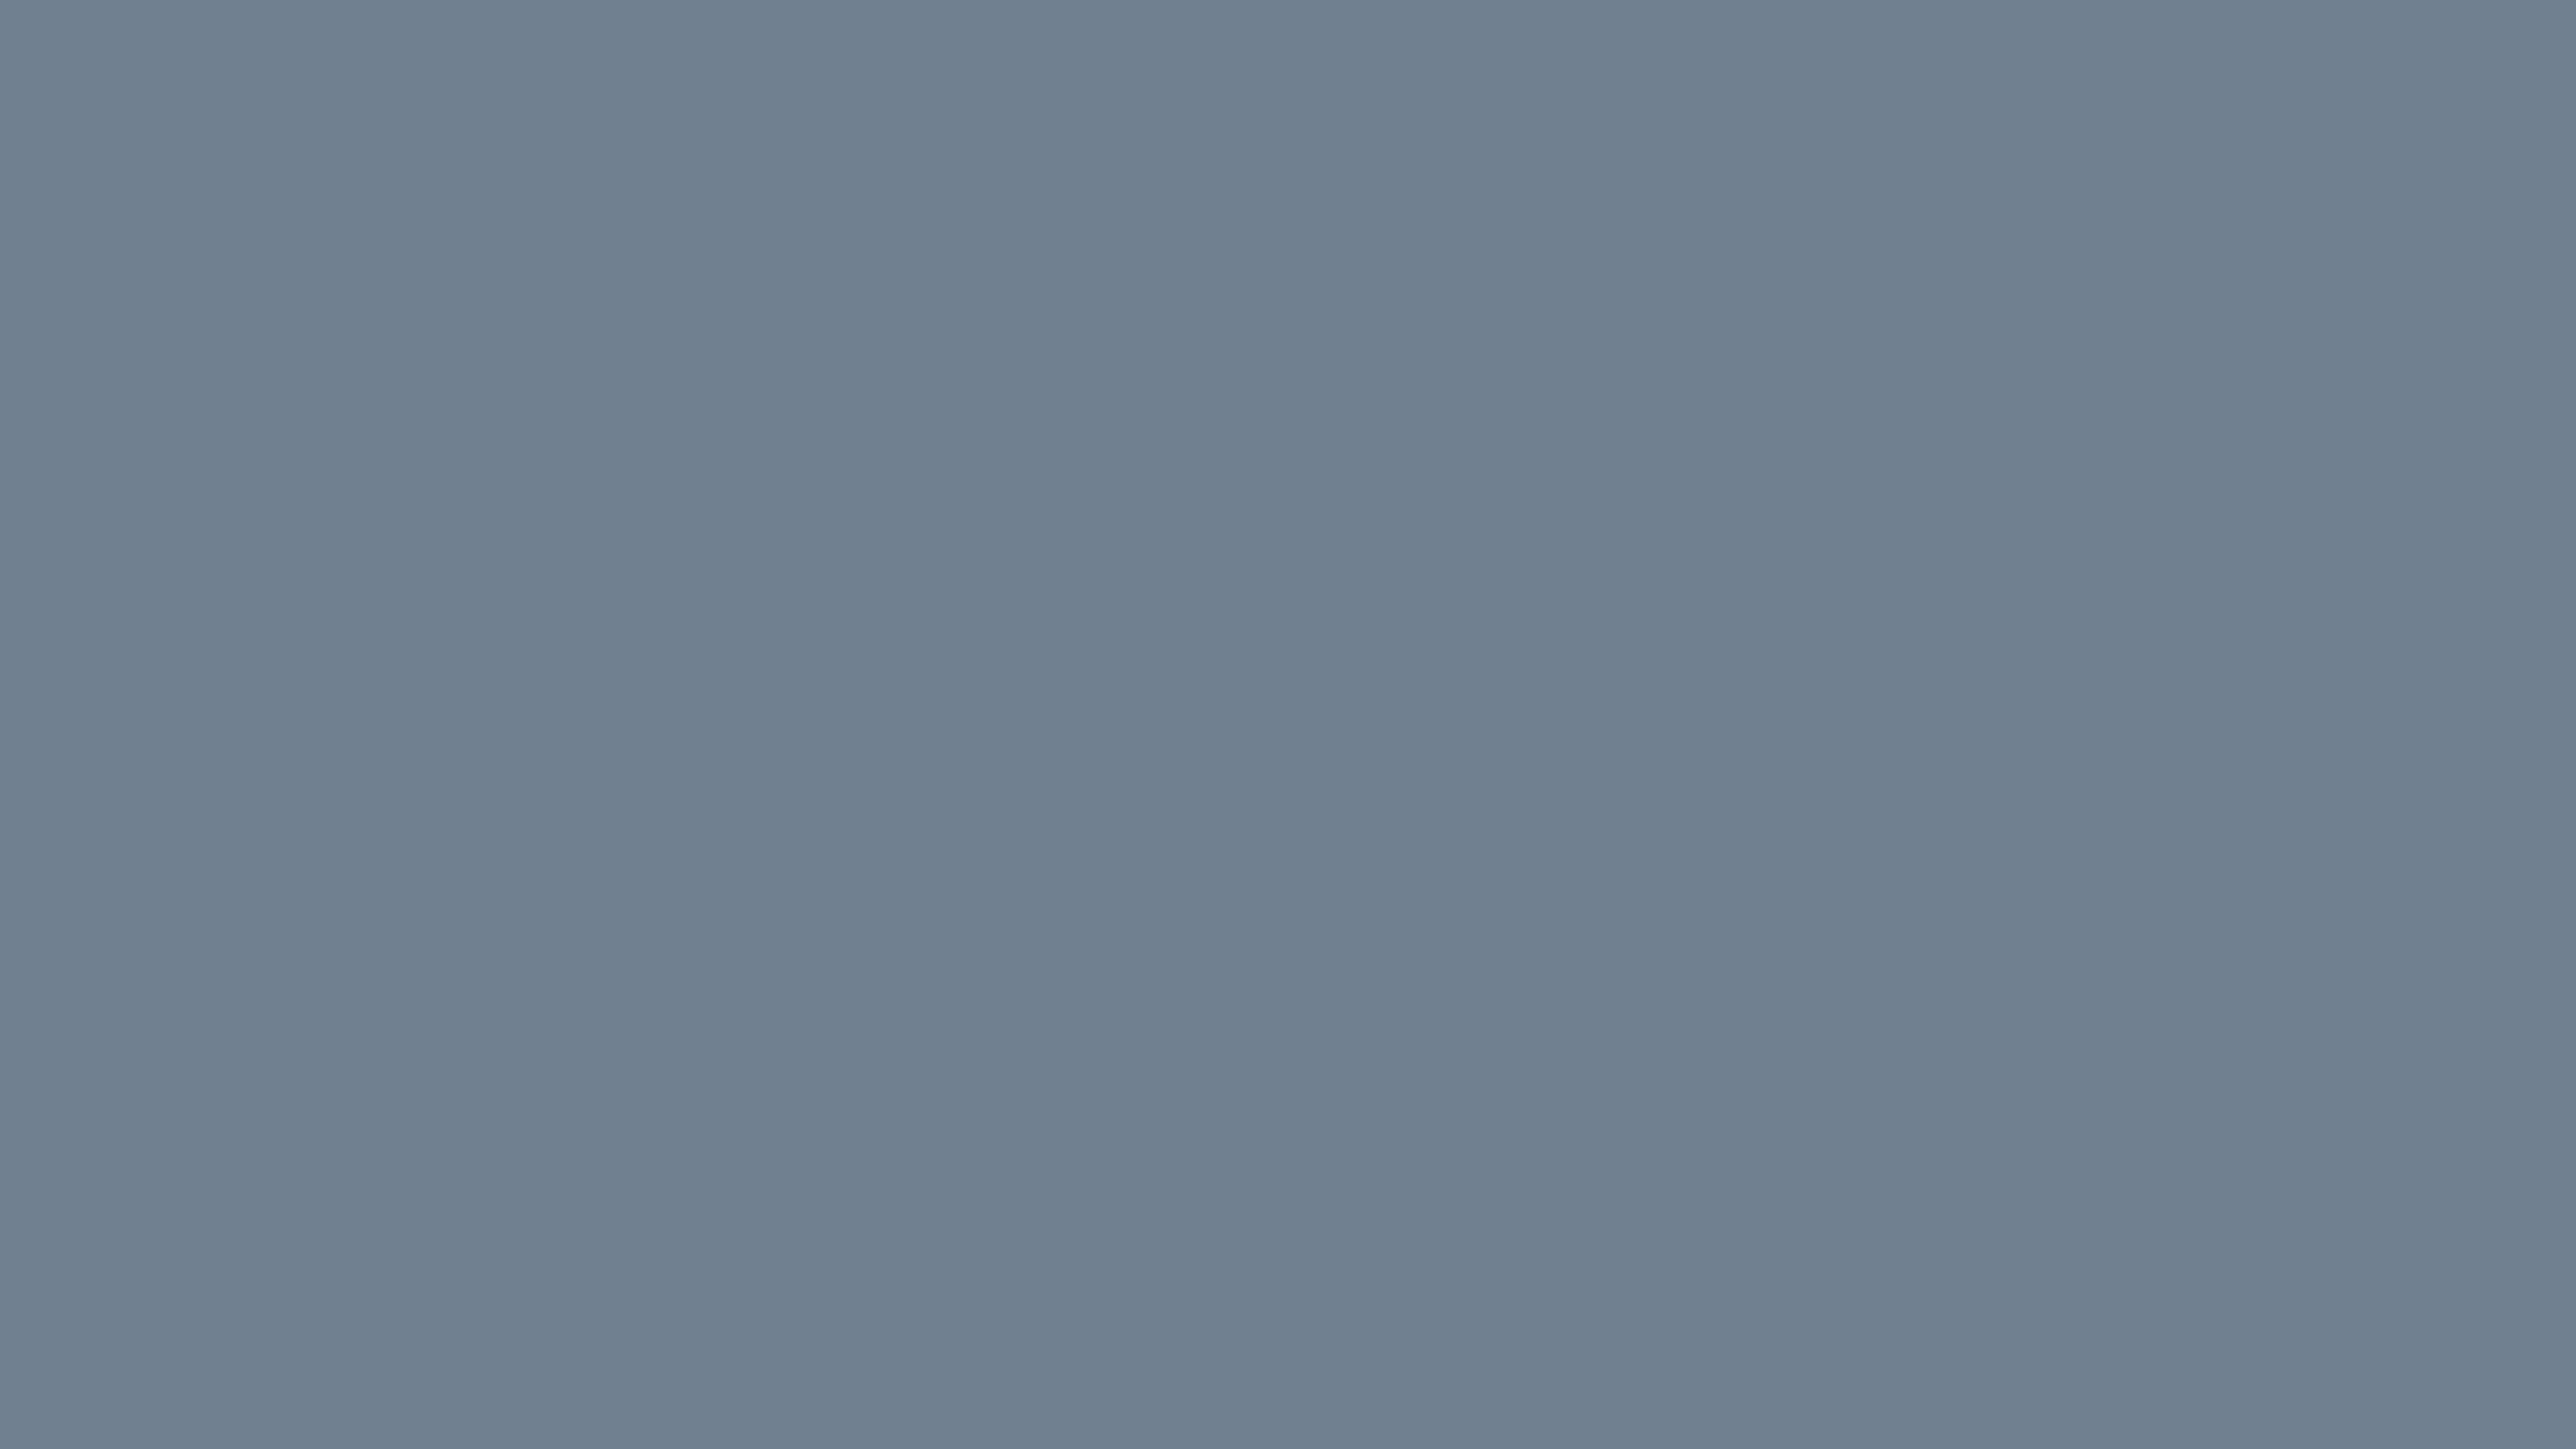 3840x2160 Slate Gray Solid Color Background